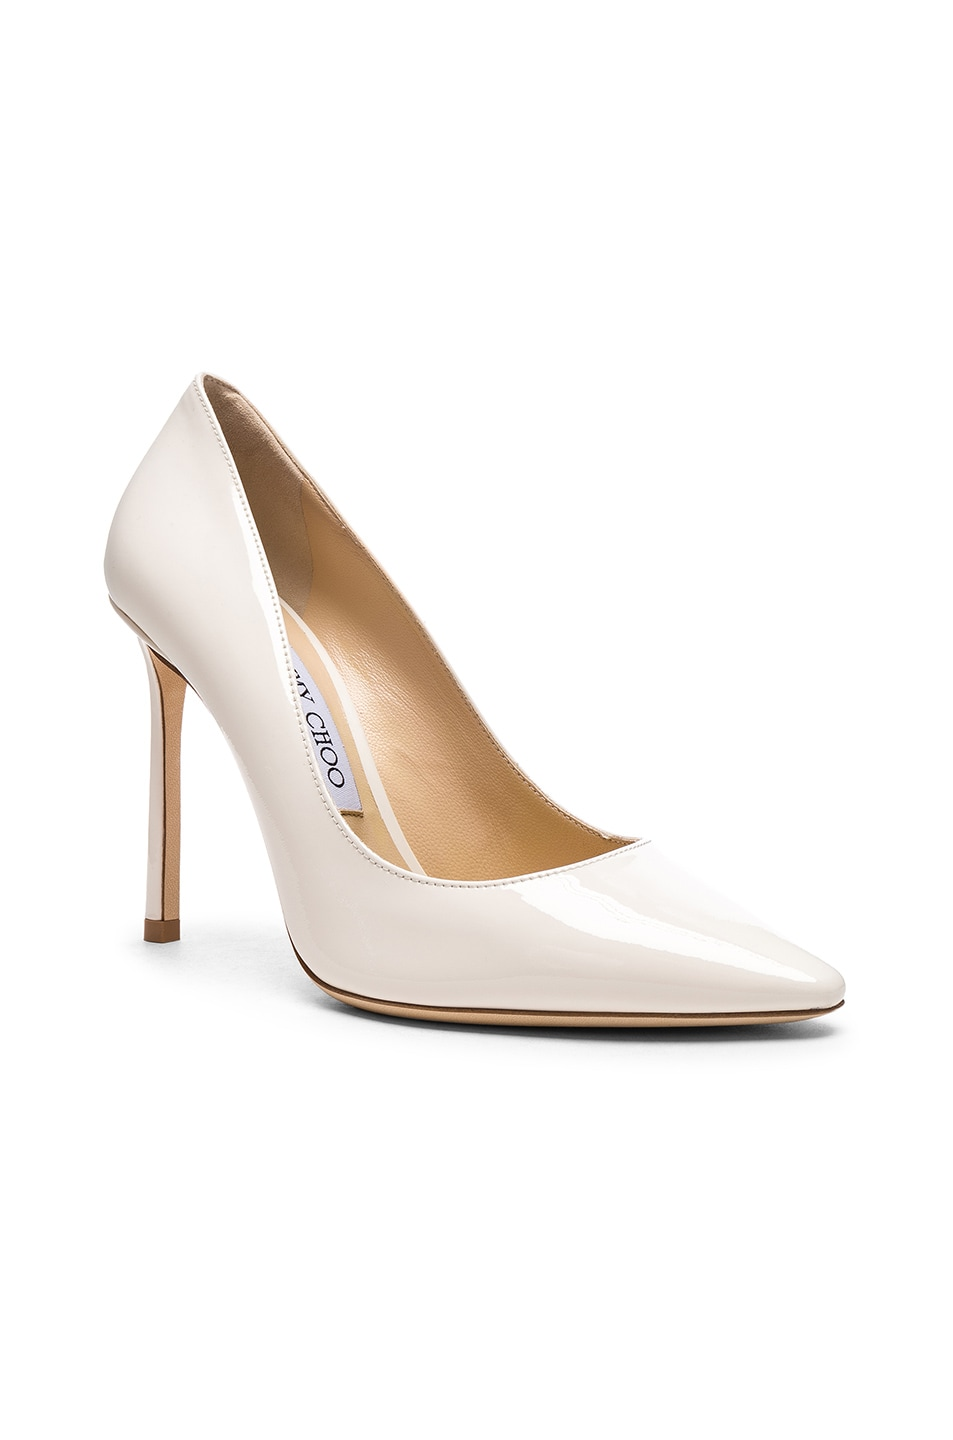 Image 2 of Jimmy Choo Romy 100 Patent Leather Heels in Chalk